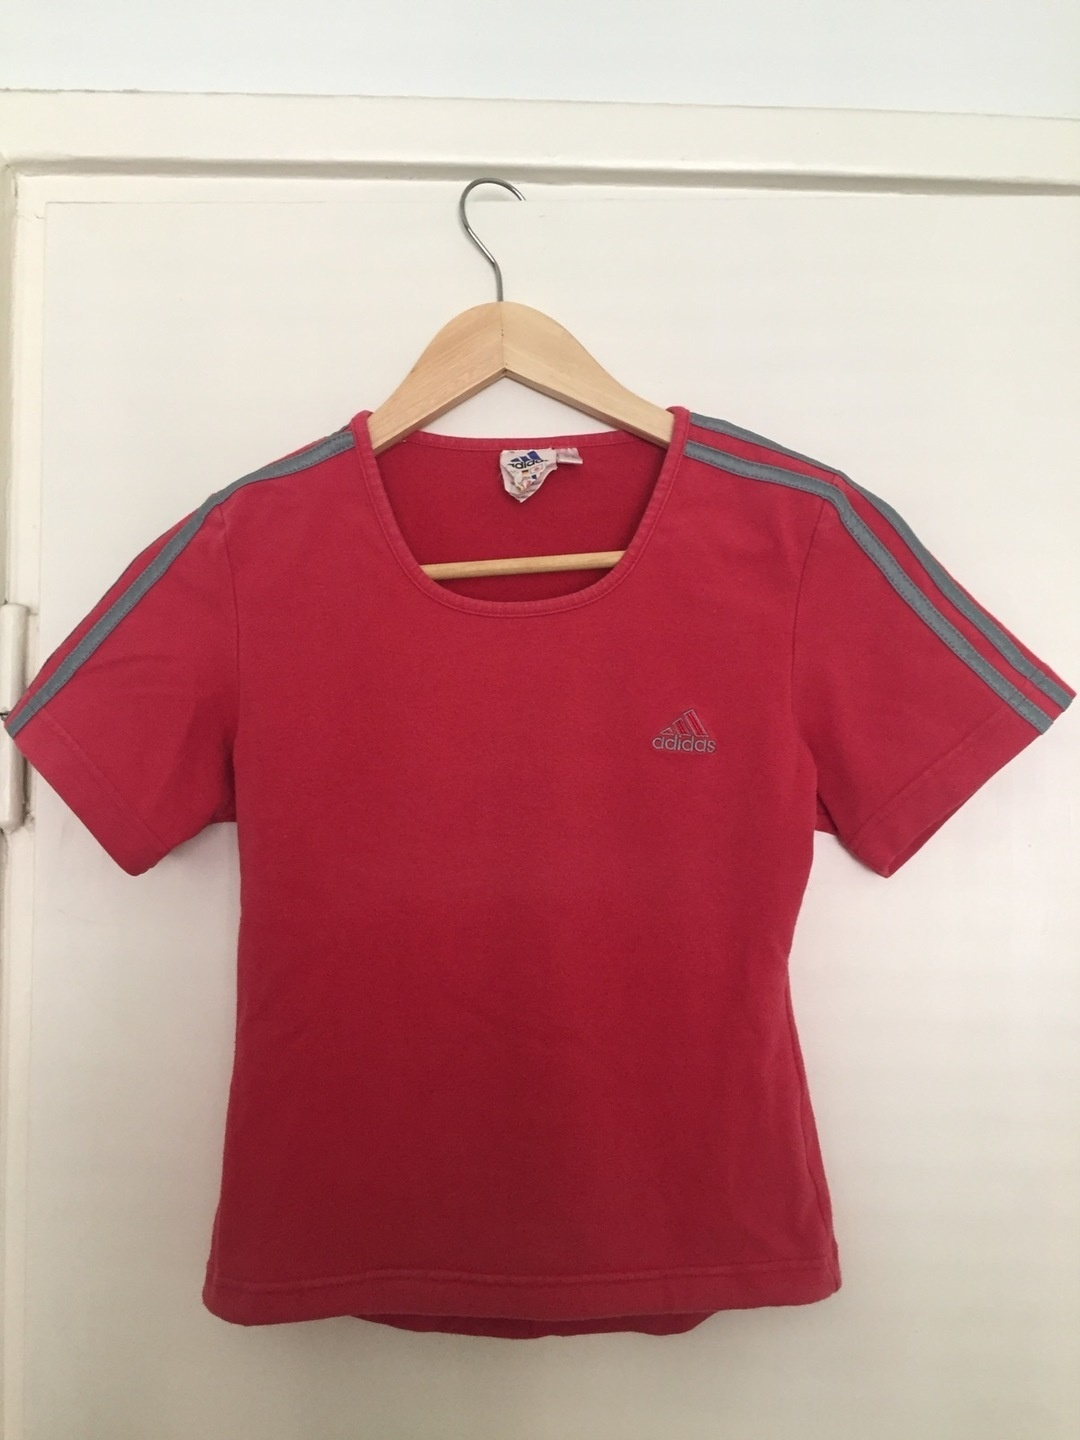 Damers toppe og t-shirts - ADIDAS photo 1